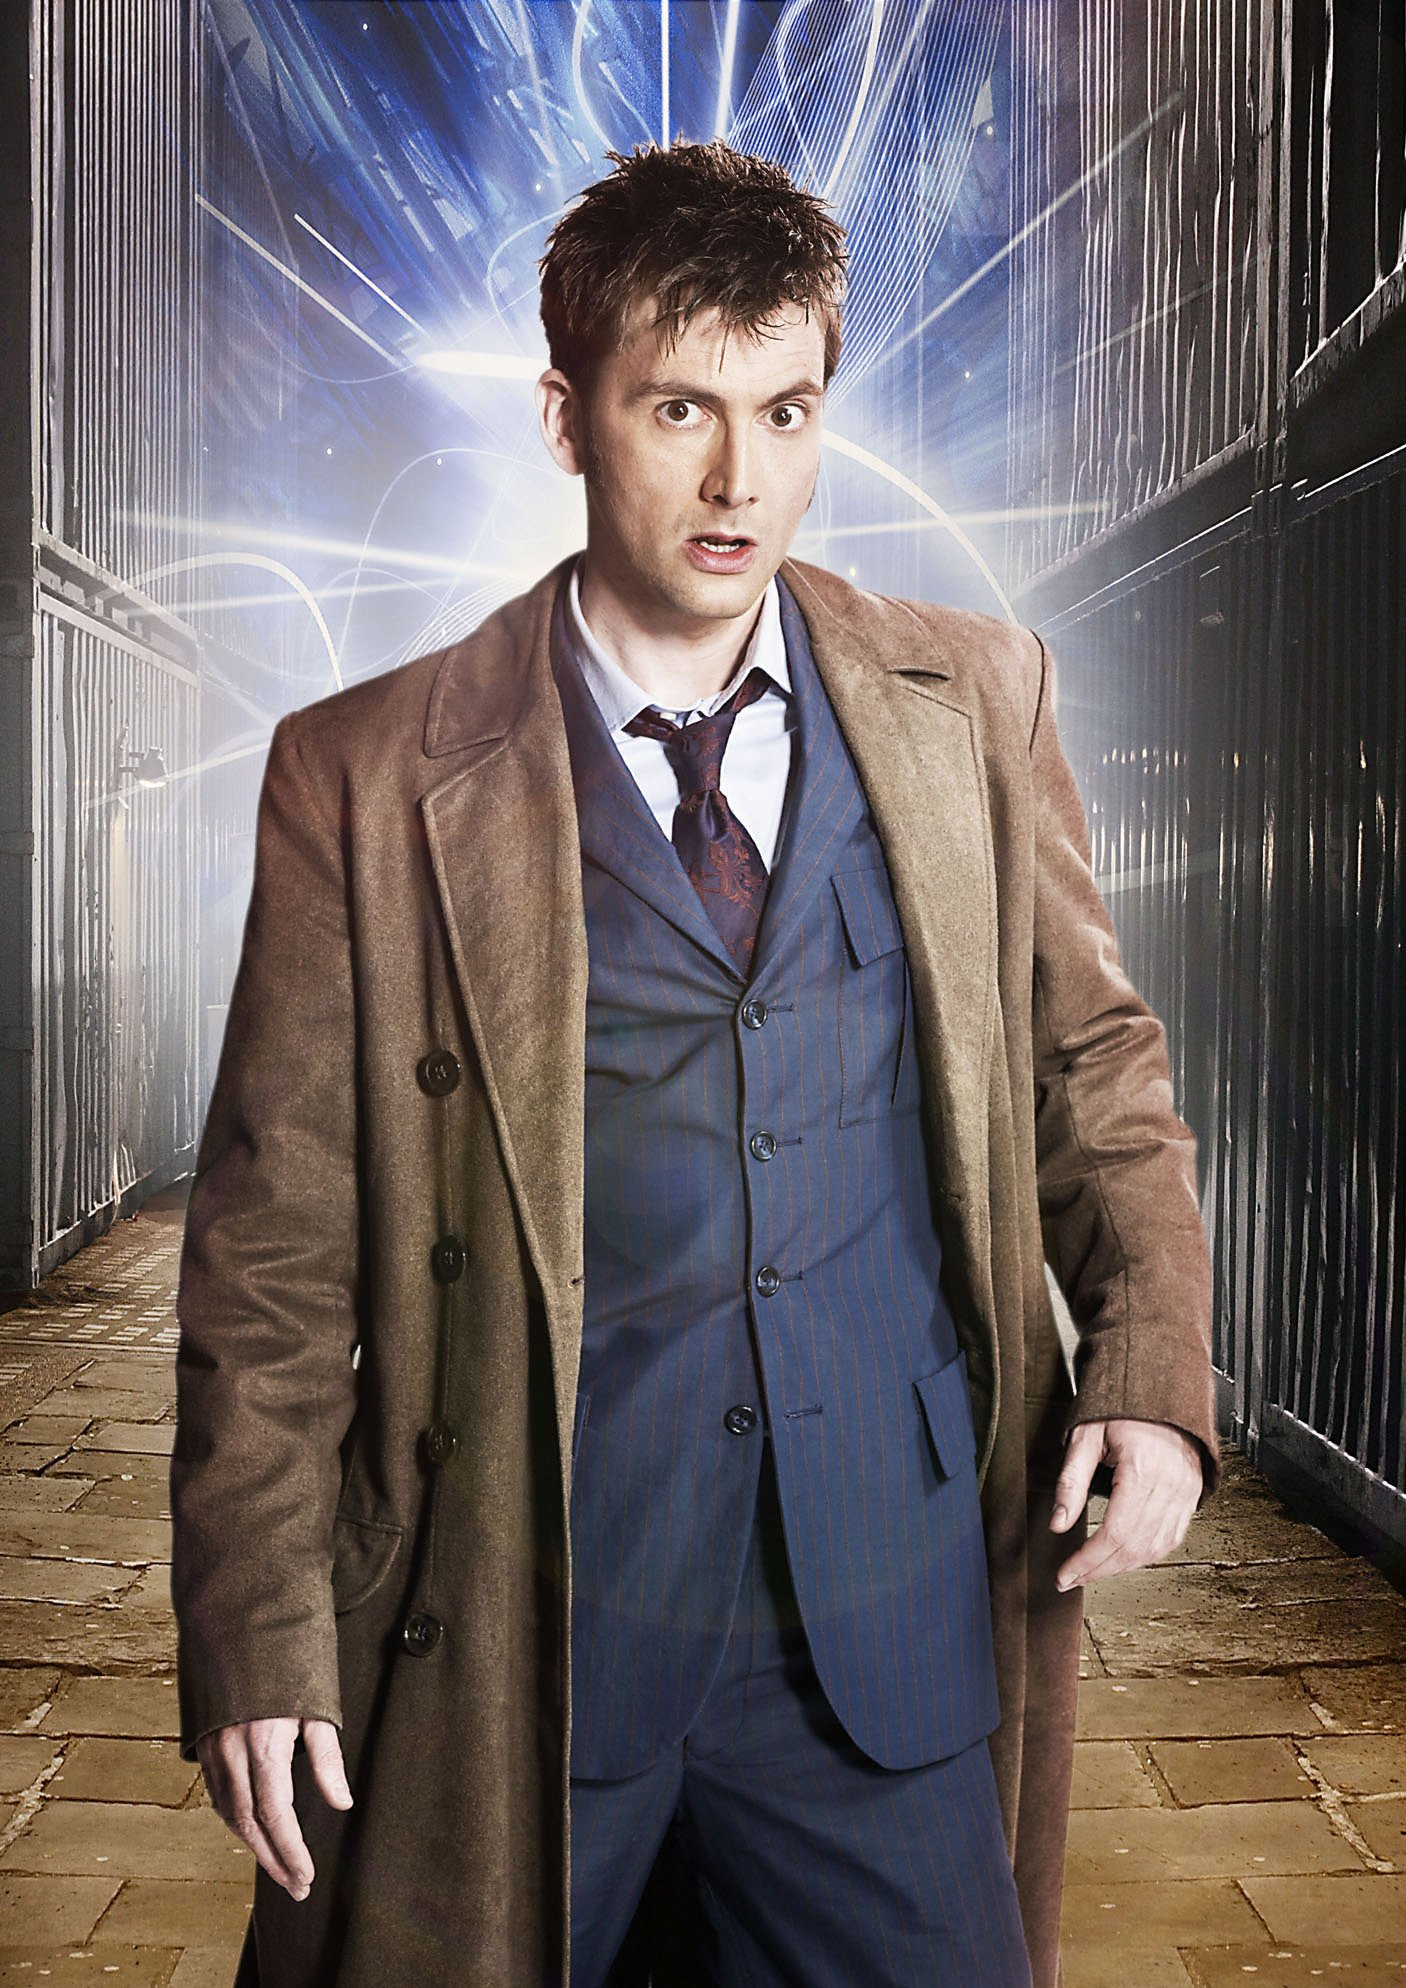 New Doctor has 'got the right idea', says Tennant